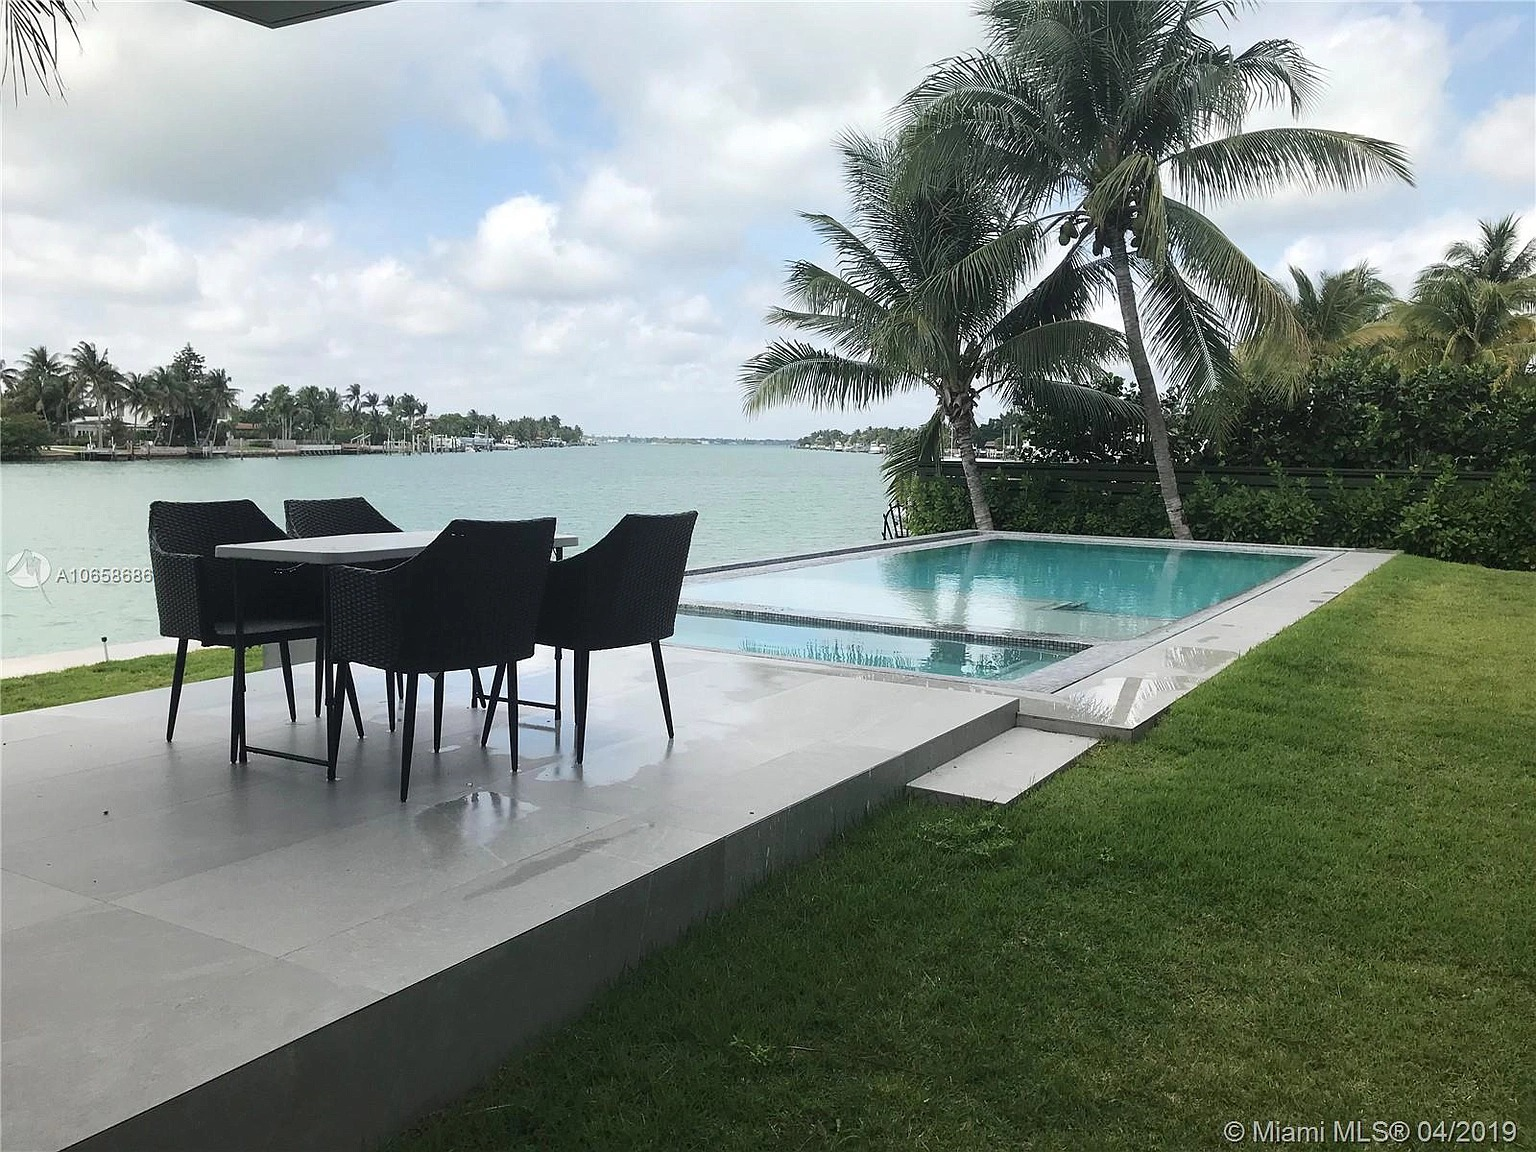 1234 S Biscayne Point Rd, Miami Beach, FL 33141 - $5,995,000 home for sale, house images, photos and pics gallery